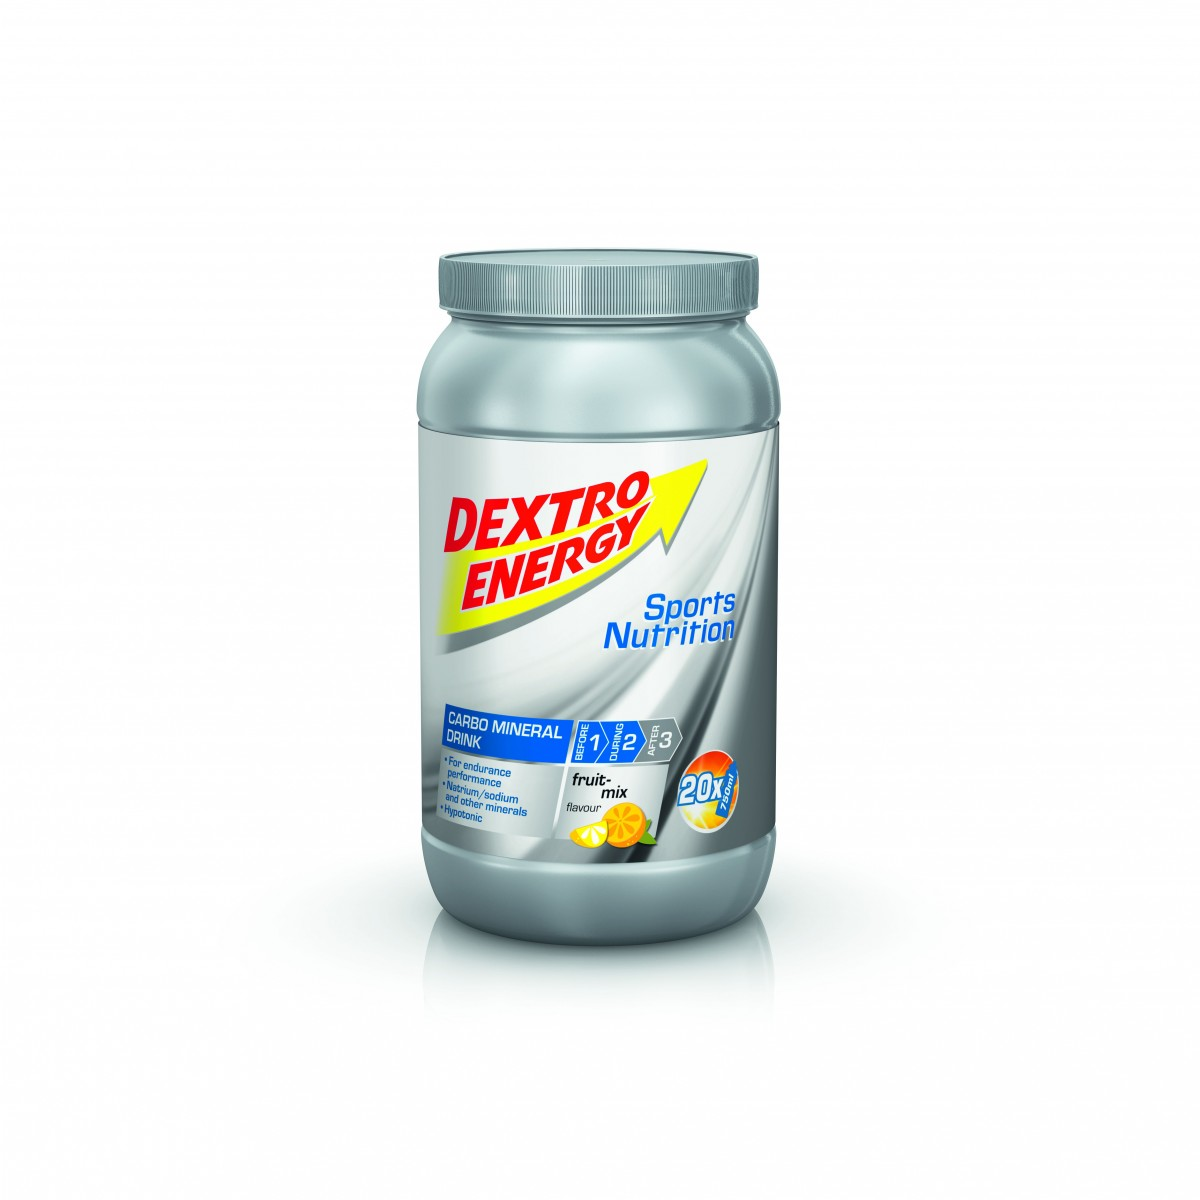 Dextro Energy Sports Nutrition- Carbo Mineral Drink Dose